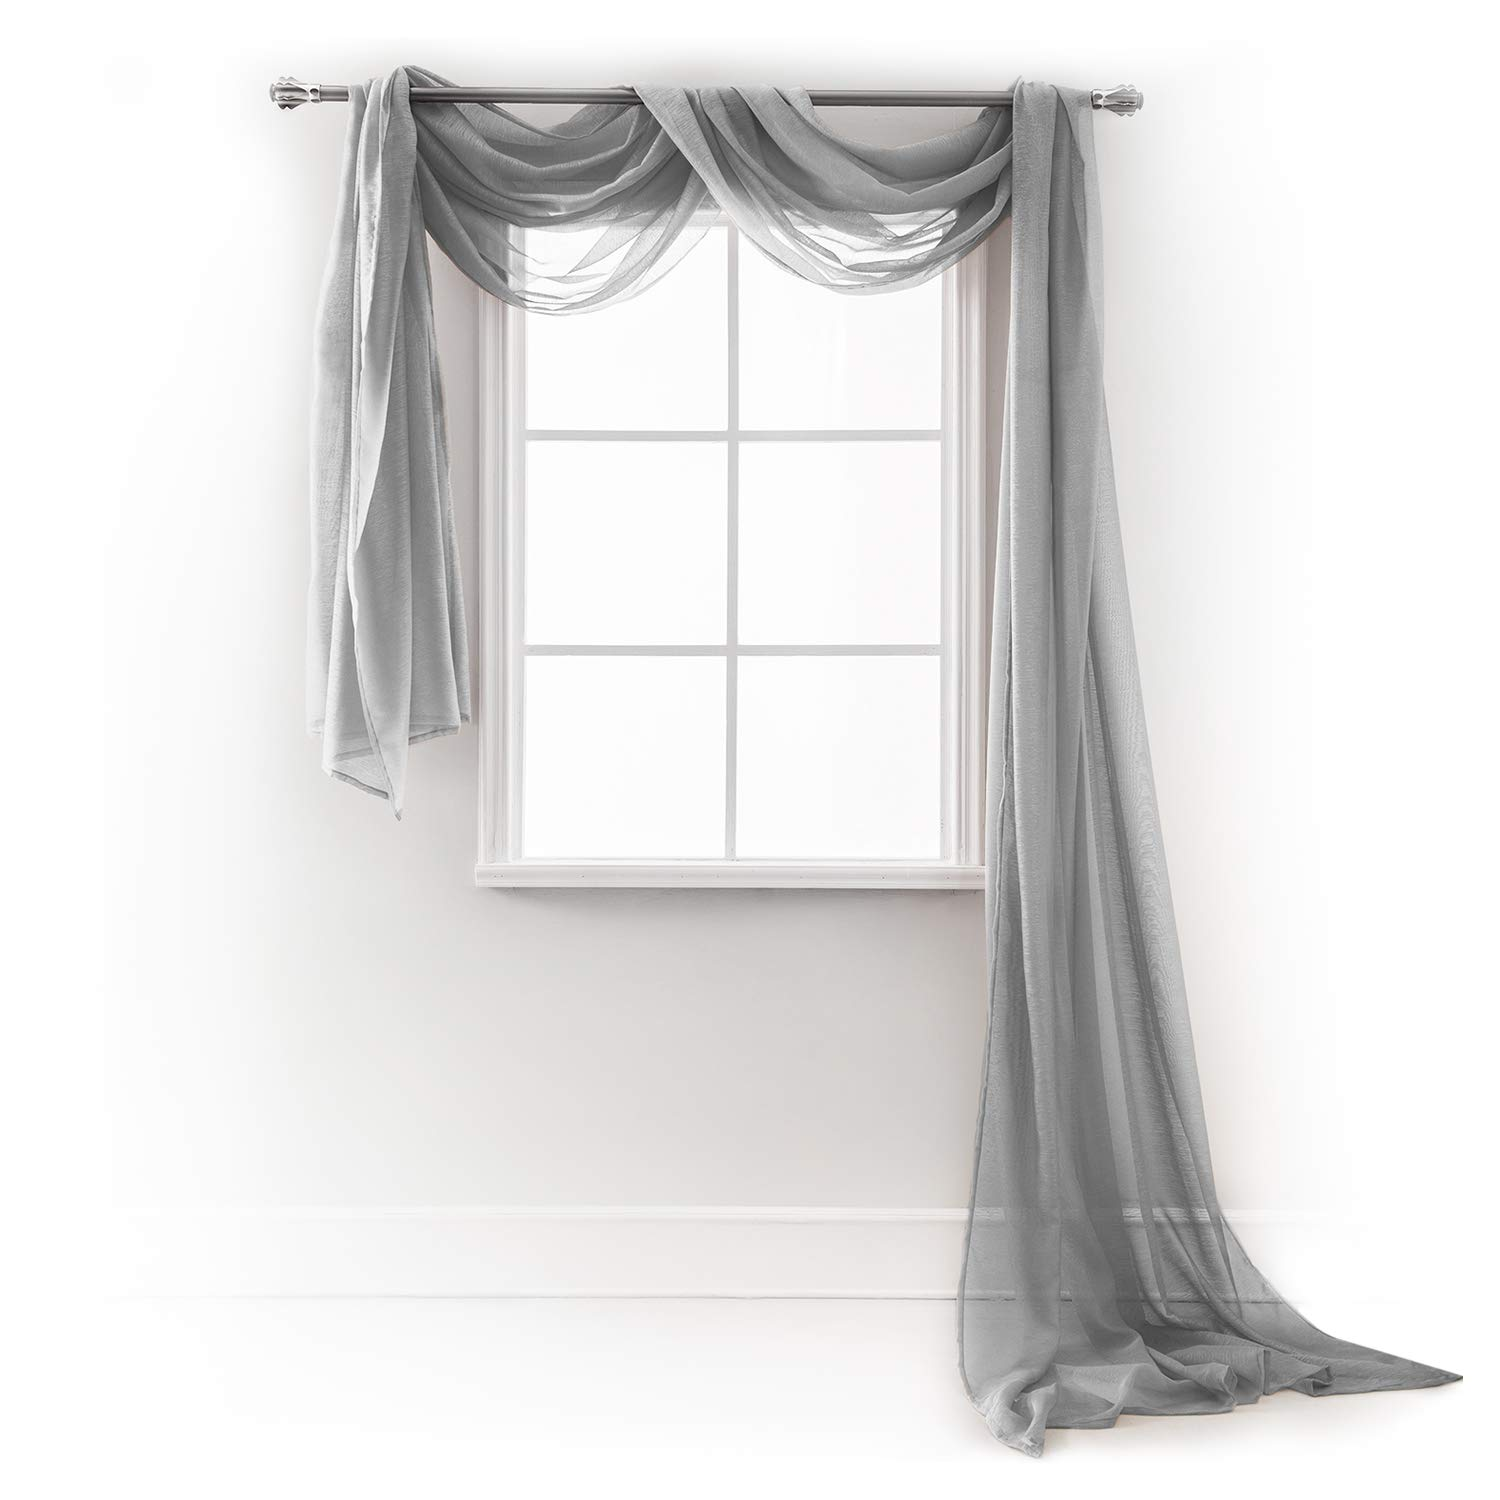 """Semi Sheer Luxury Scarf Window Decor Modern Classic Outdoor Home Design Light Penetrating Provide Privacy Soft Durable Polyester Easy Upk. add to Curtains Drapes (Scarf 54'' x 216"""" Morning Gray)"""